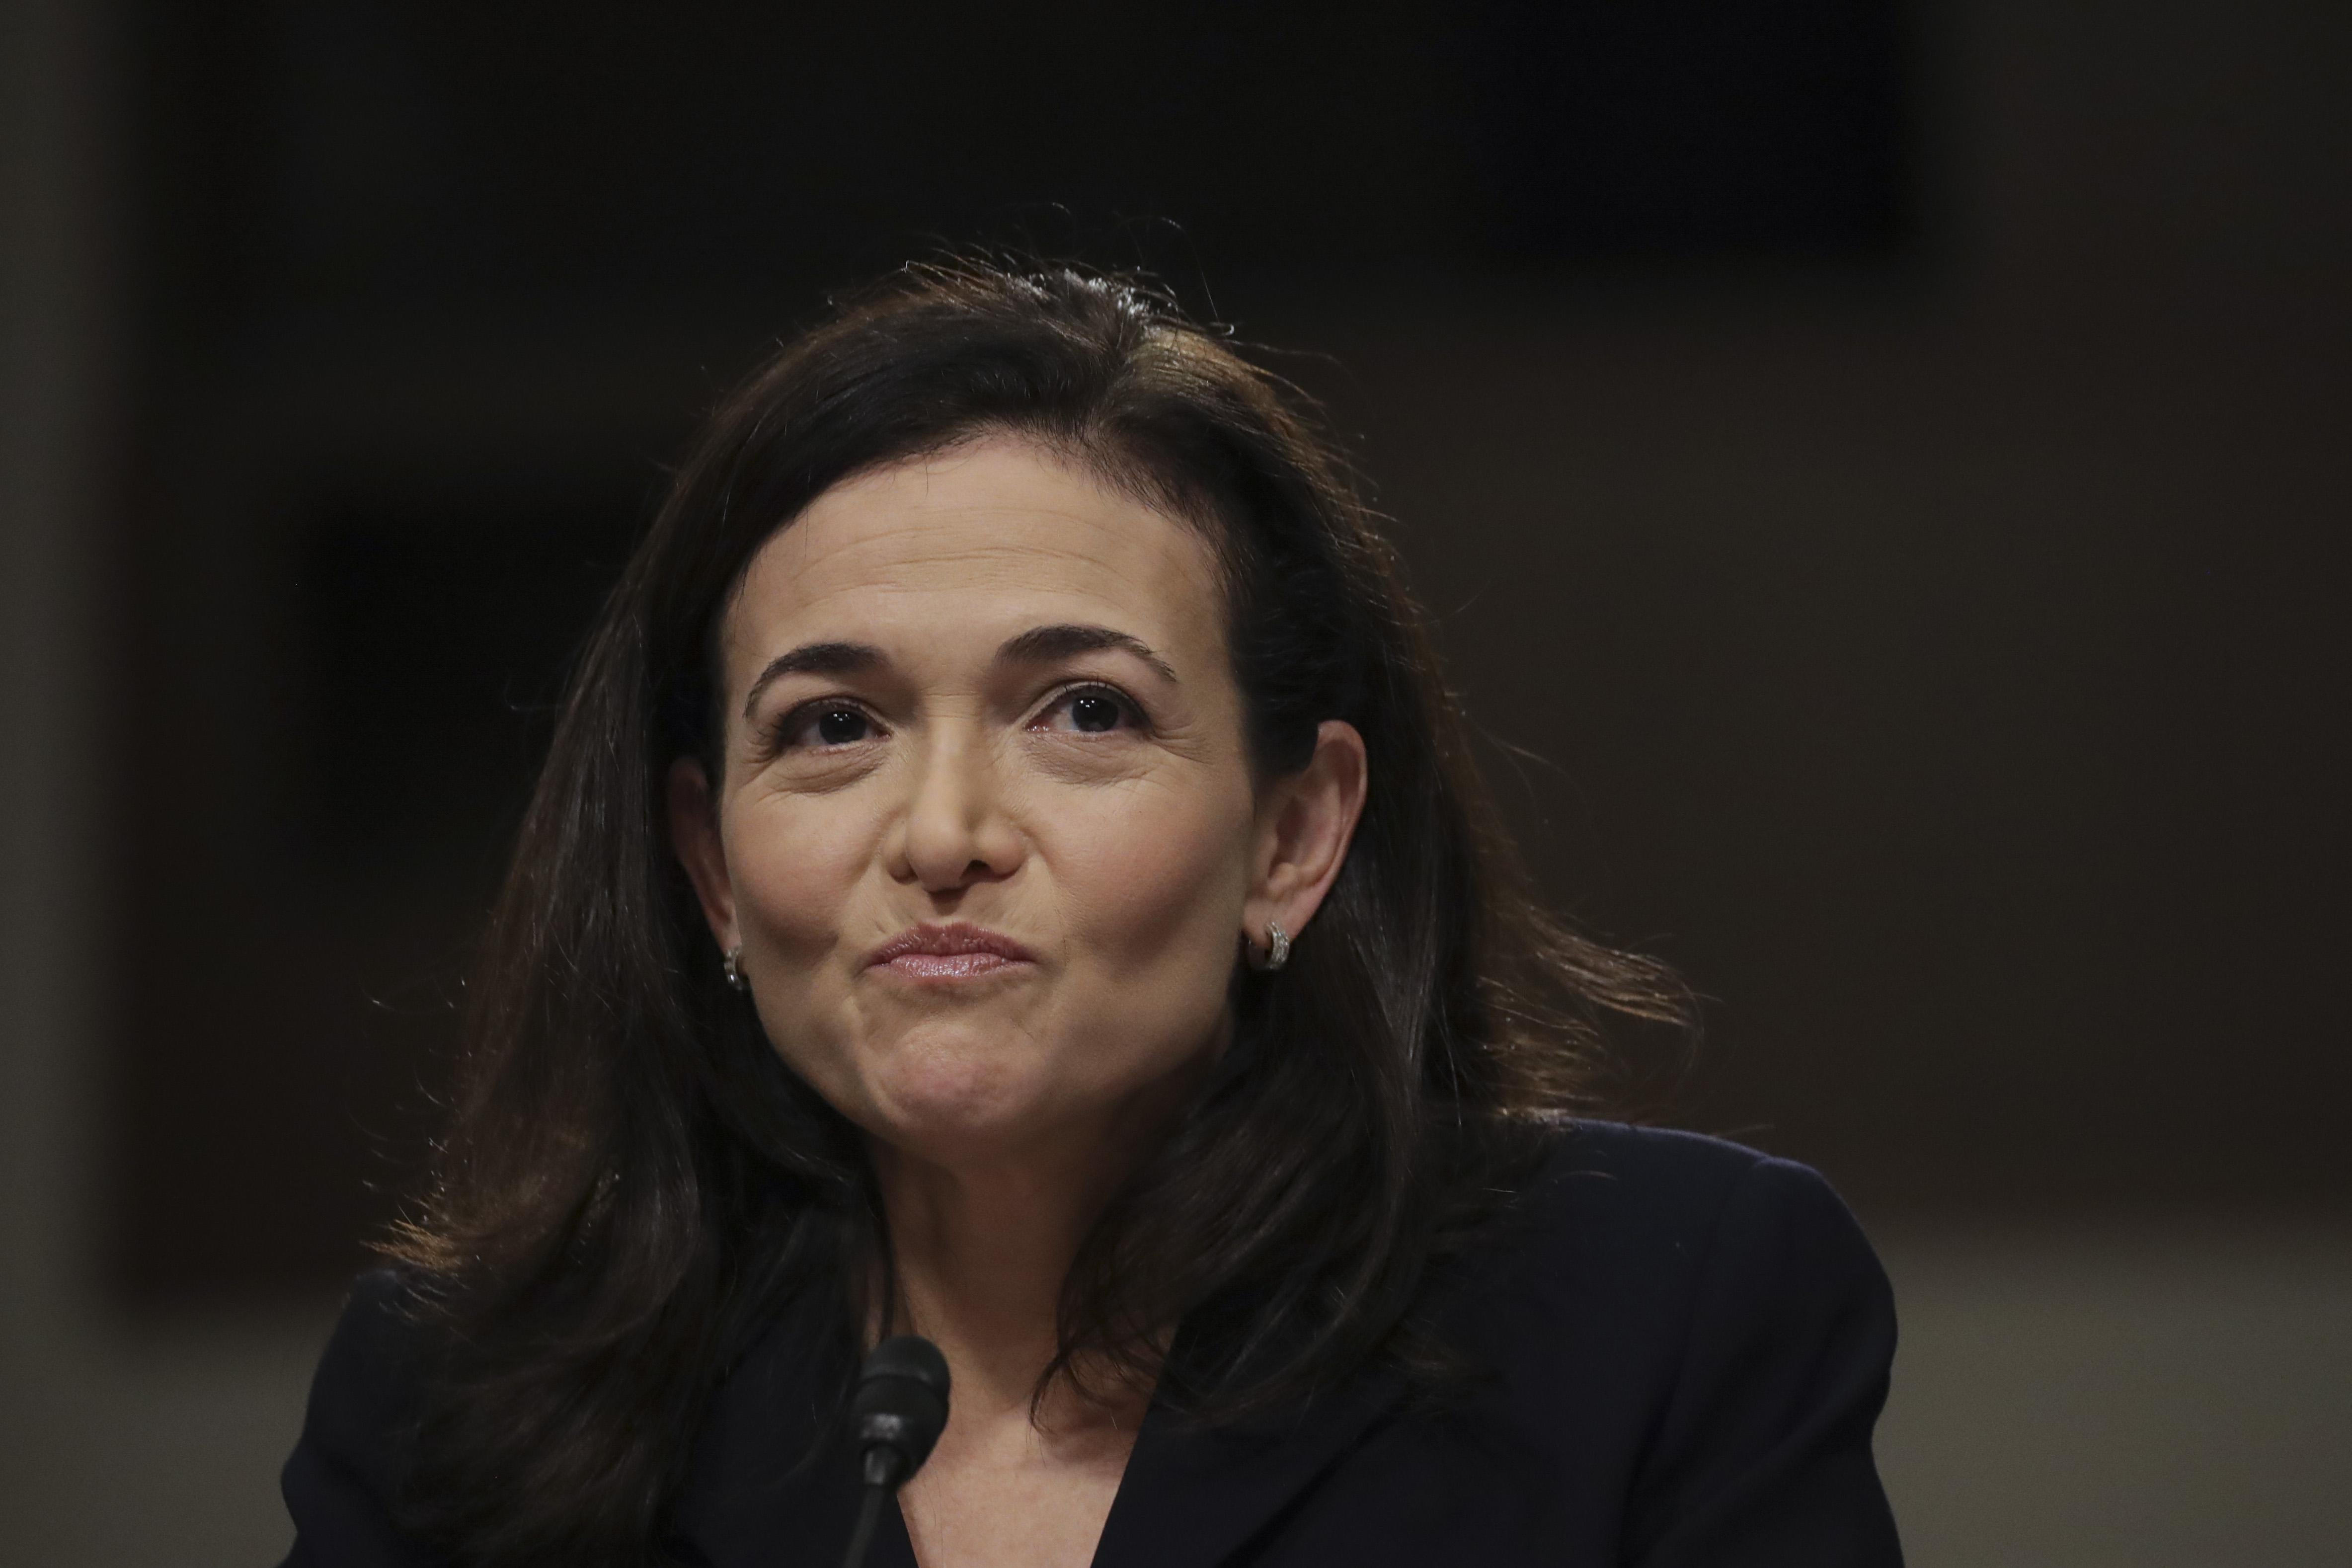 Facebook chief operating officer Sheryl Sandberg testifies during a Senate Intelligence Committee hearing concerning foreign influence operations' use of social media platforms, on Capitol Hill, September 5, 2018 in Washington, DC.